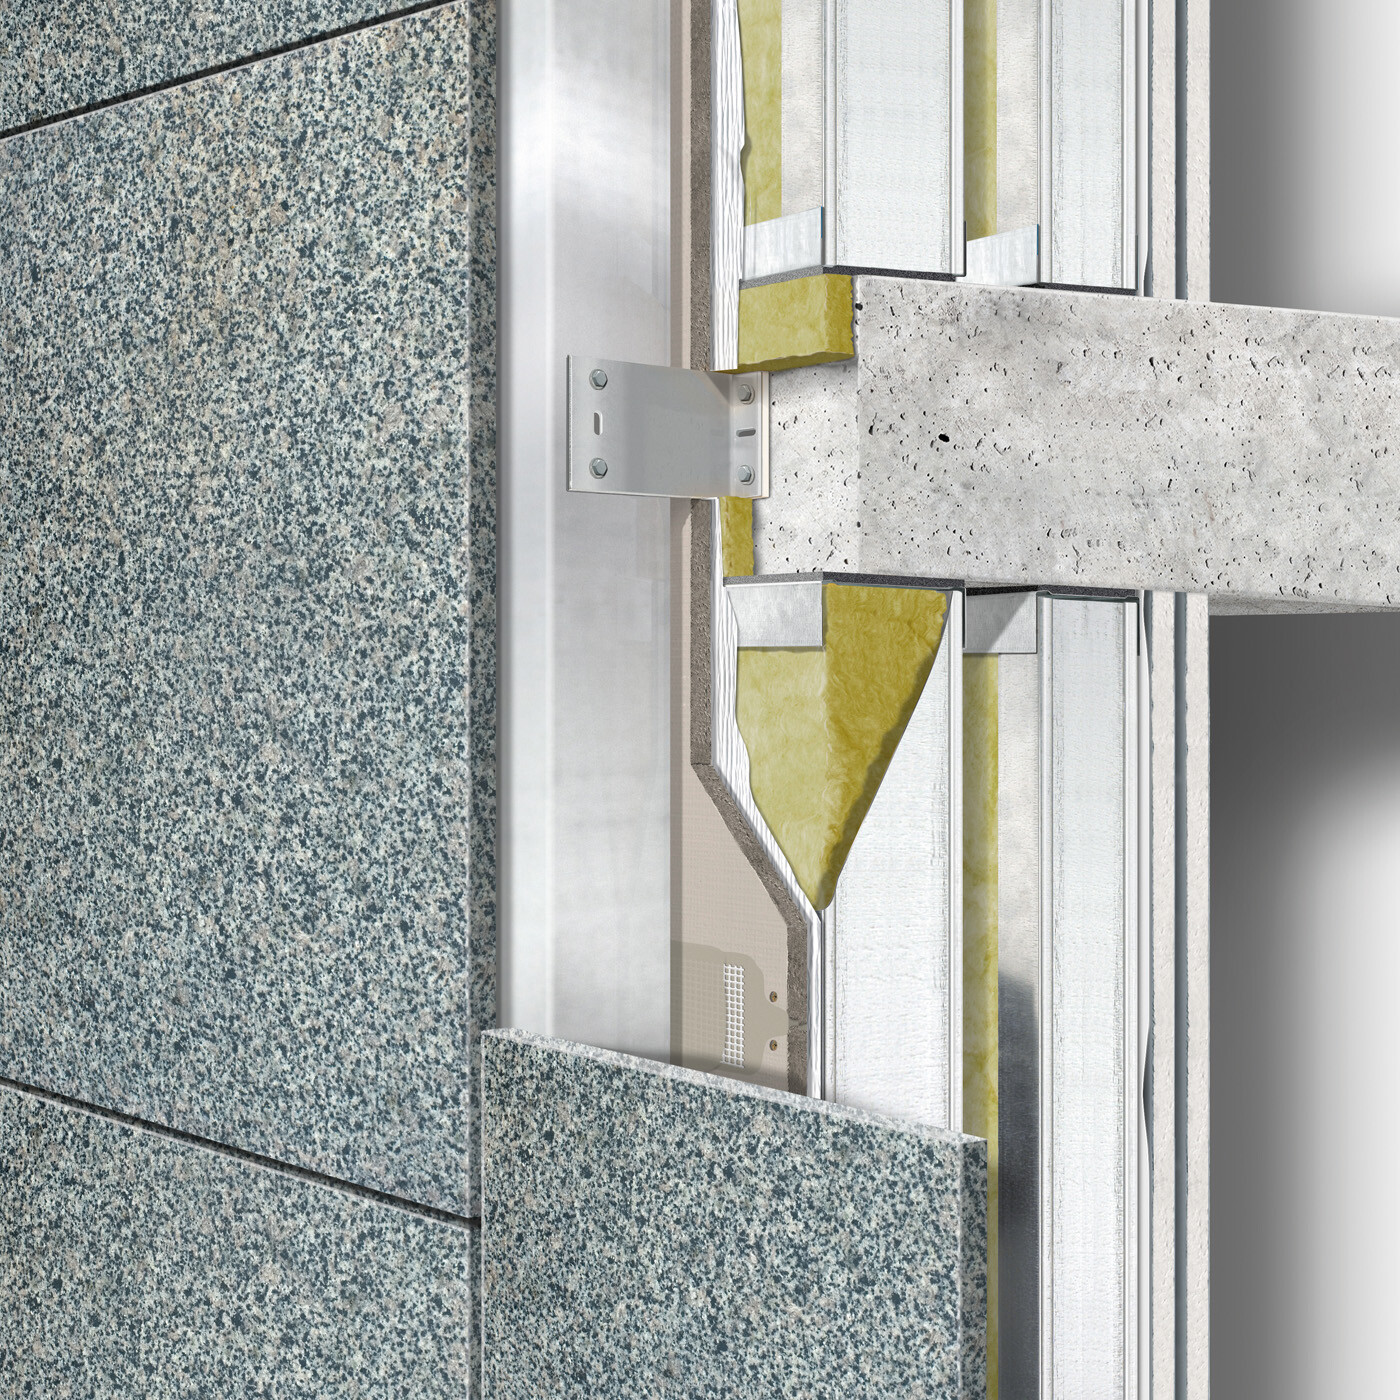 Ventilated construction: Exterior wall building envelope behind between floors cladding double stud